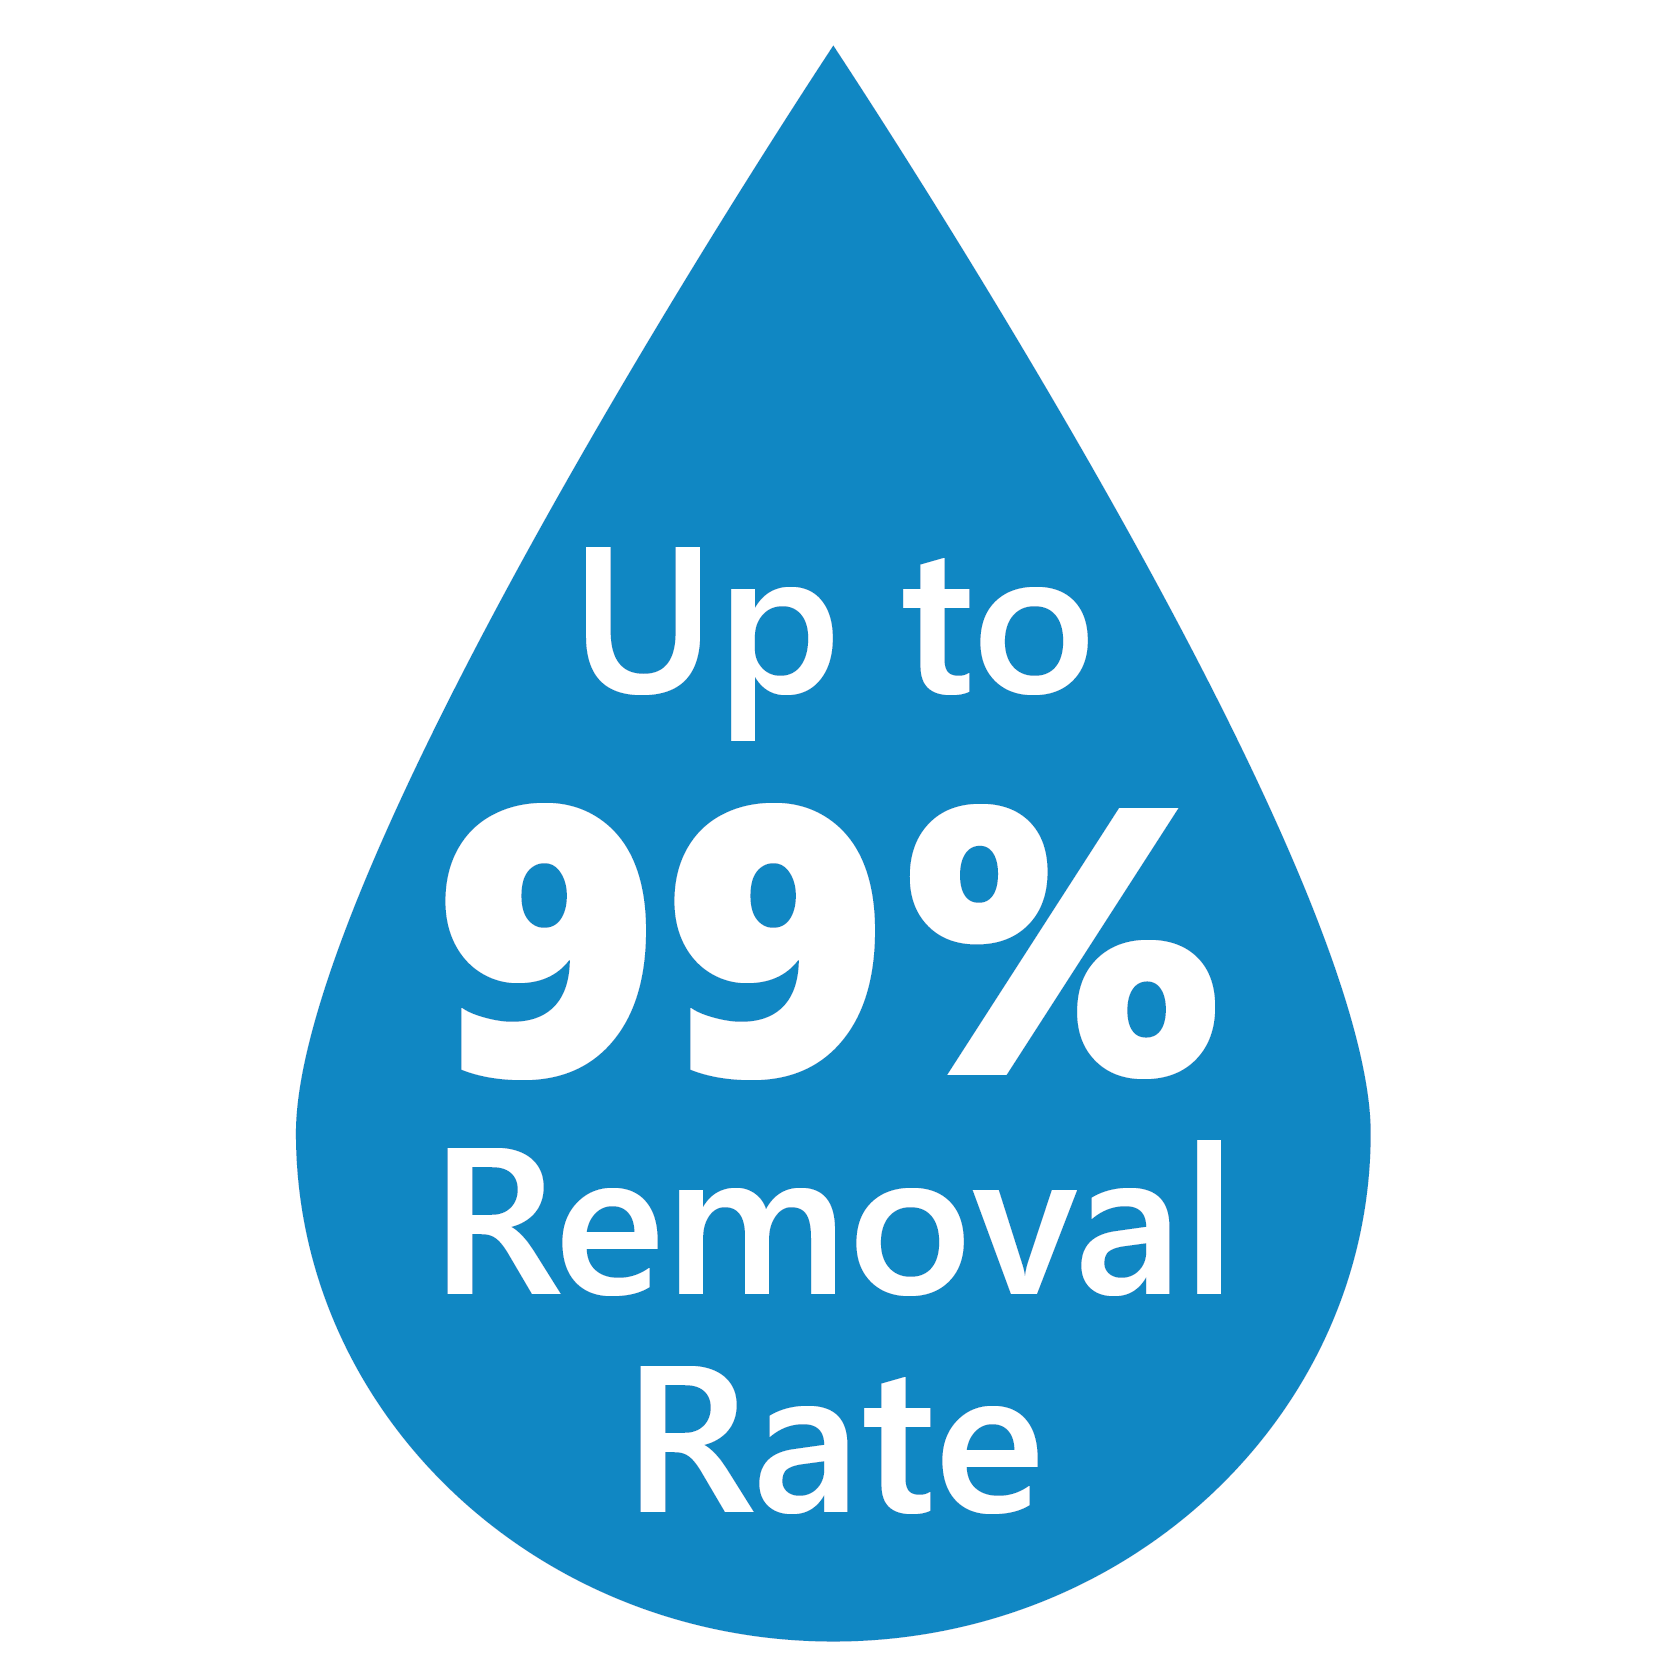 Up to 99% Removal Rate